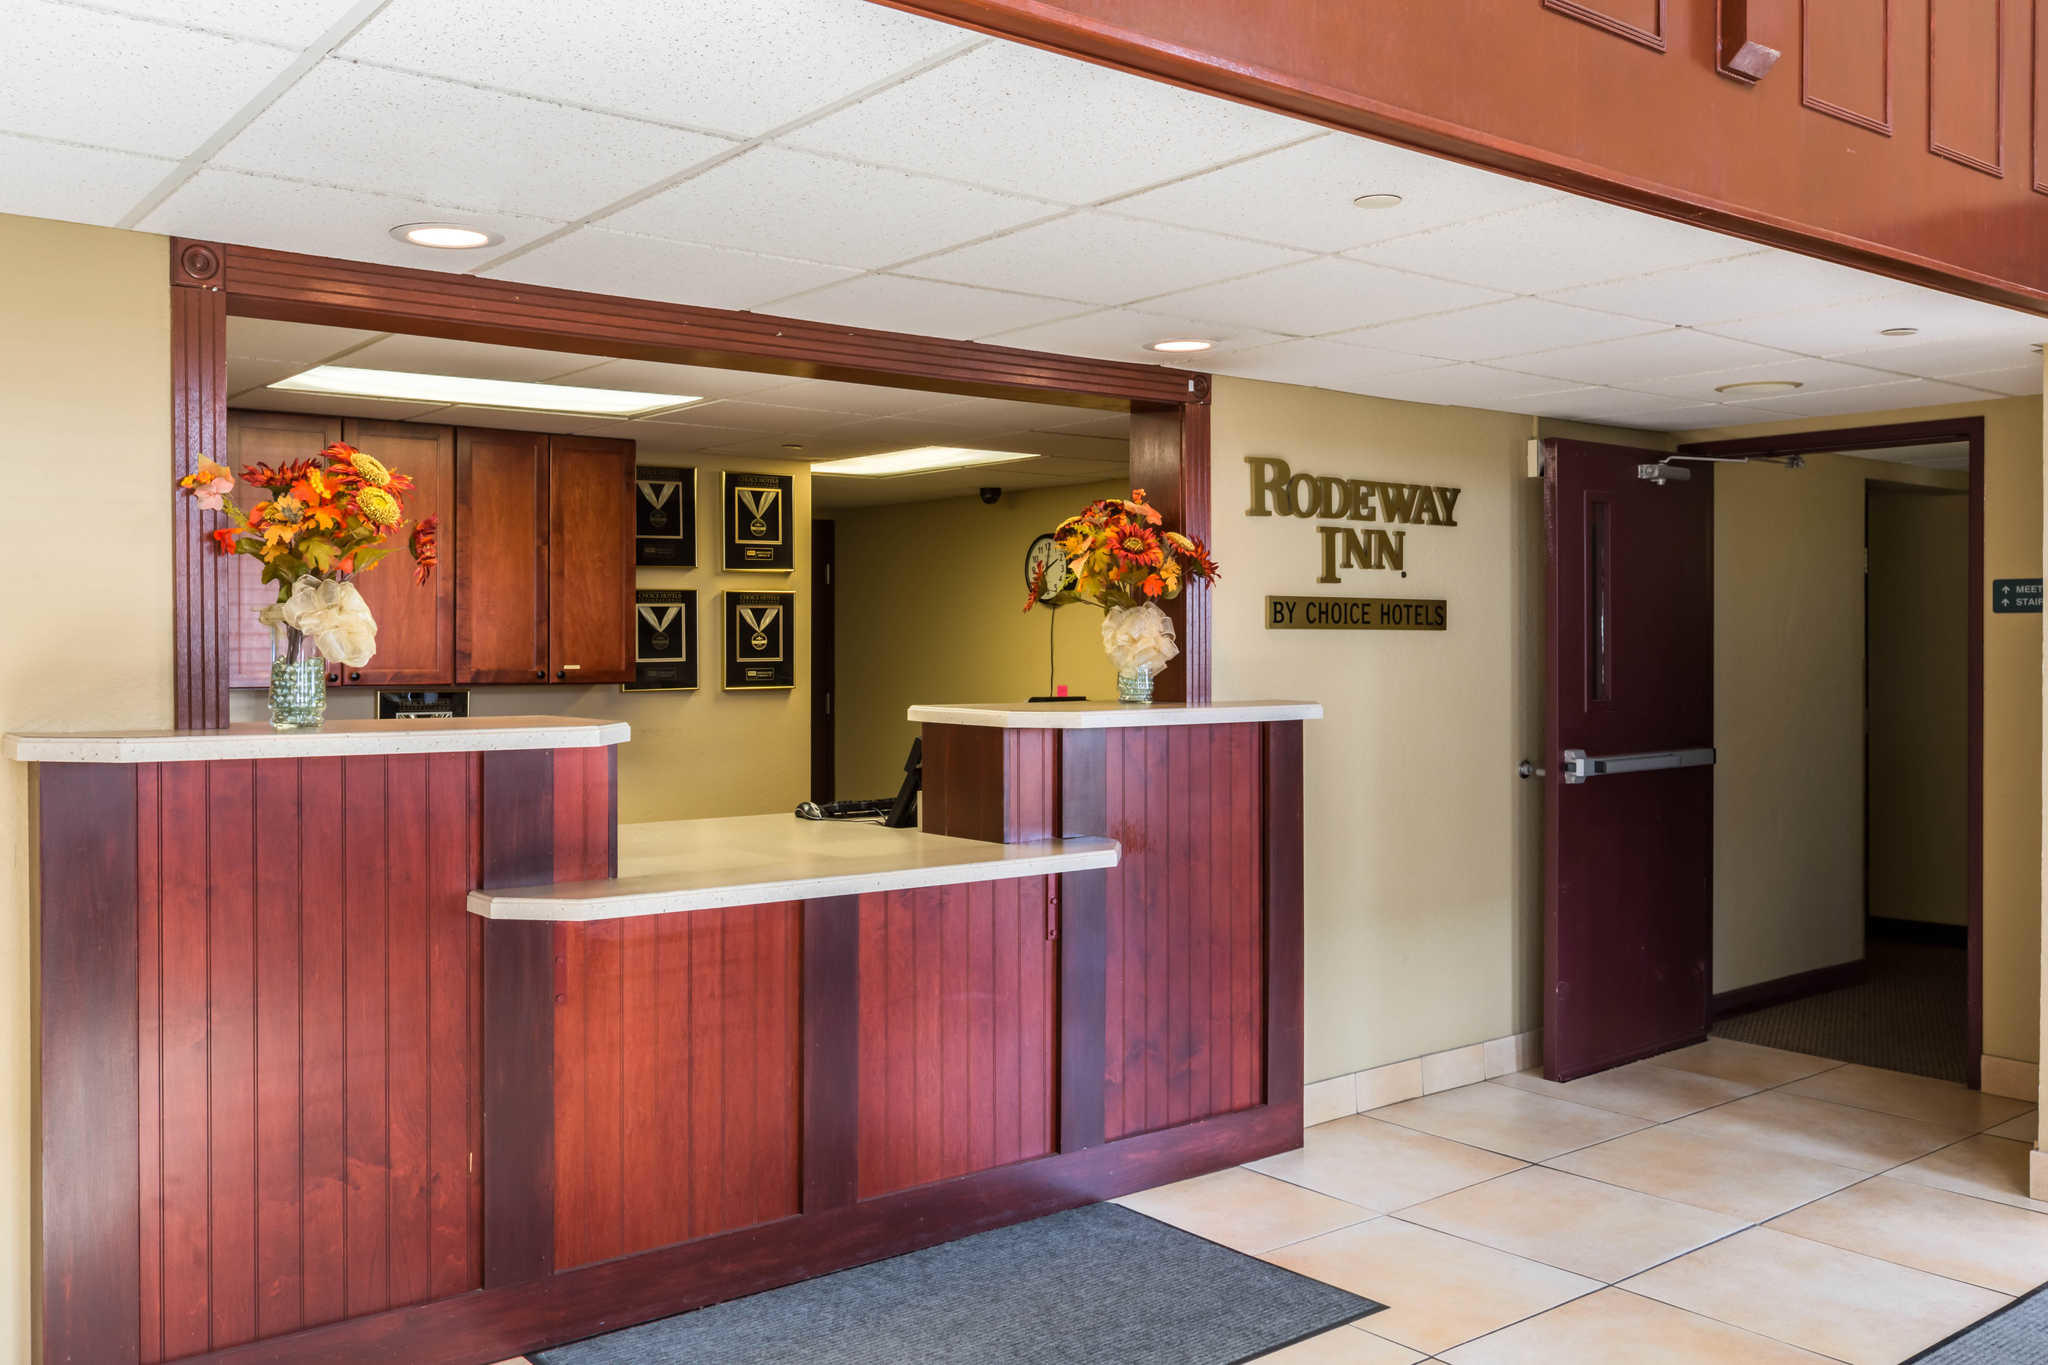 Business Rooms For Rent In Norfolk Ne